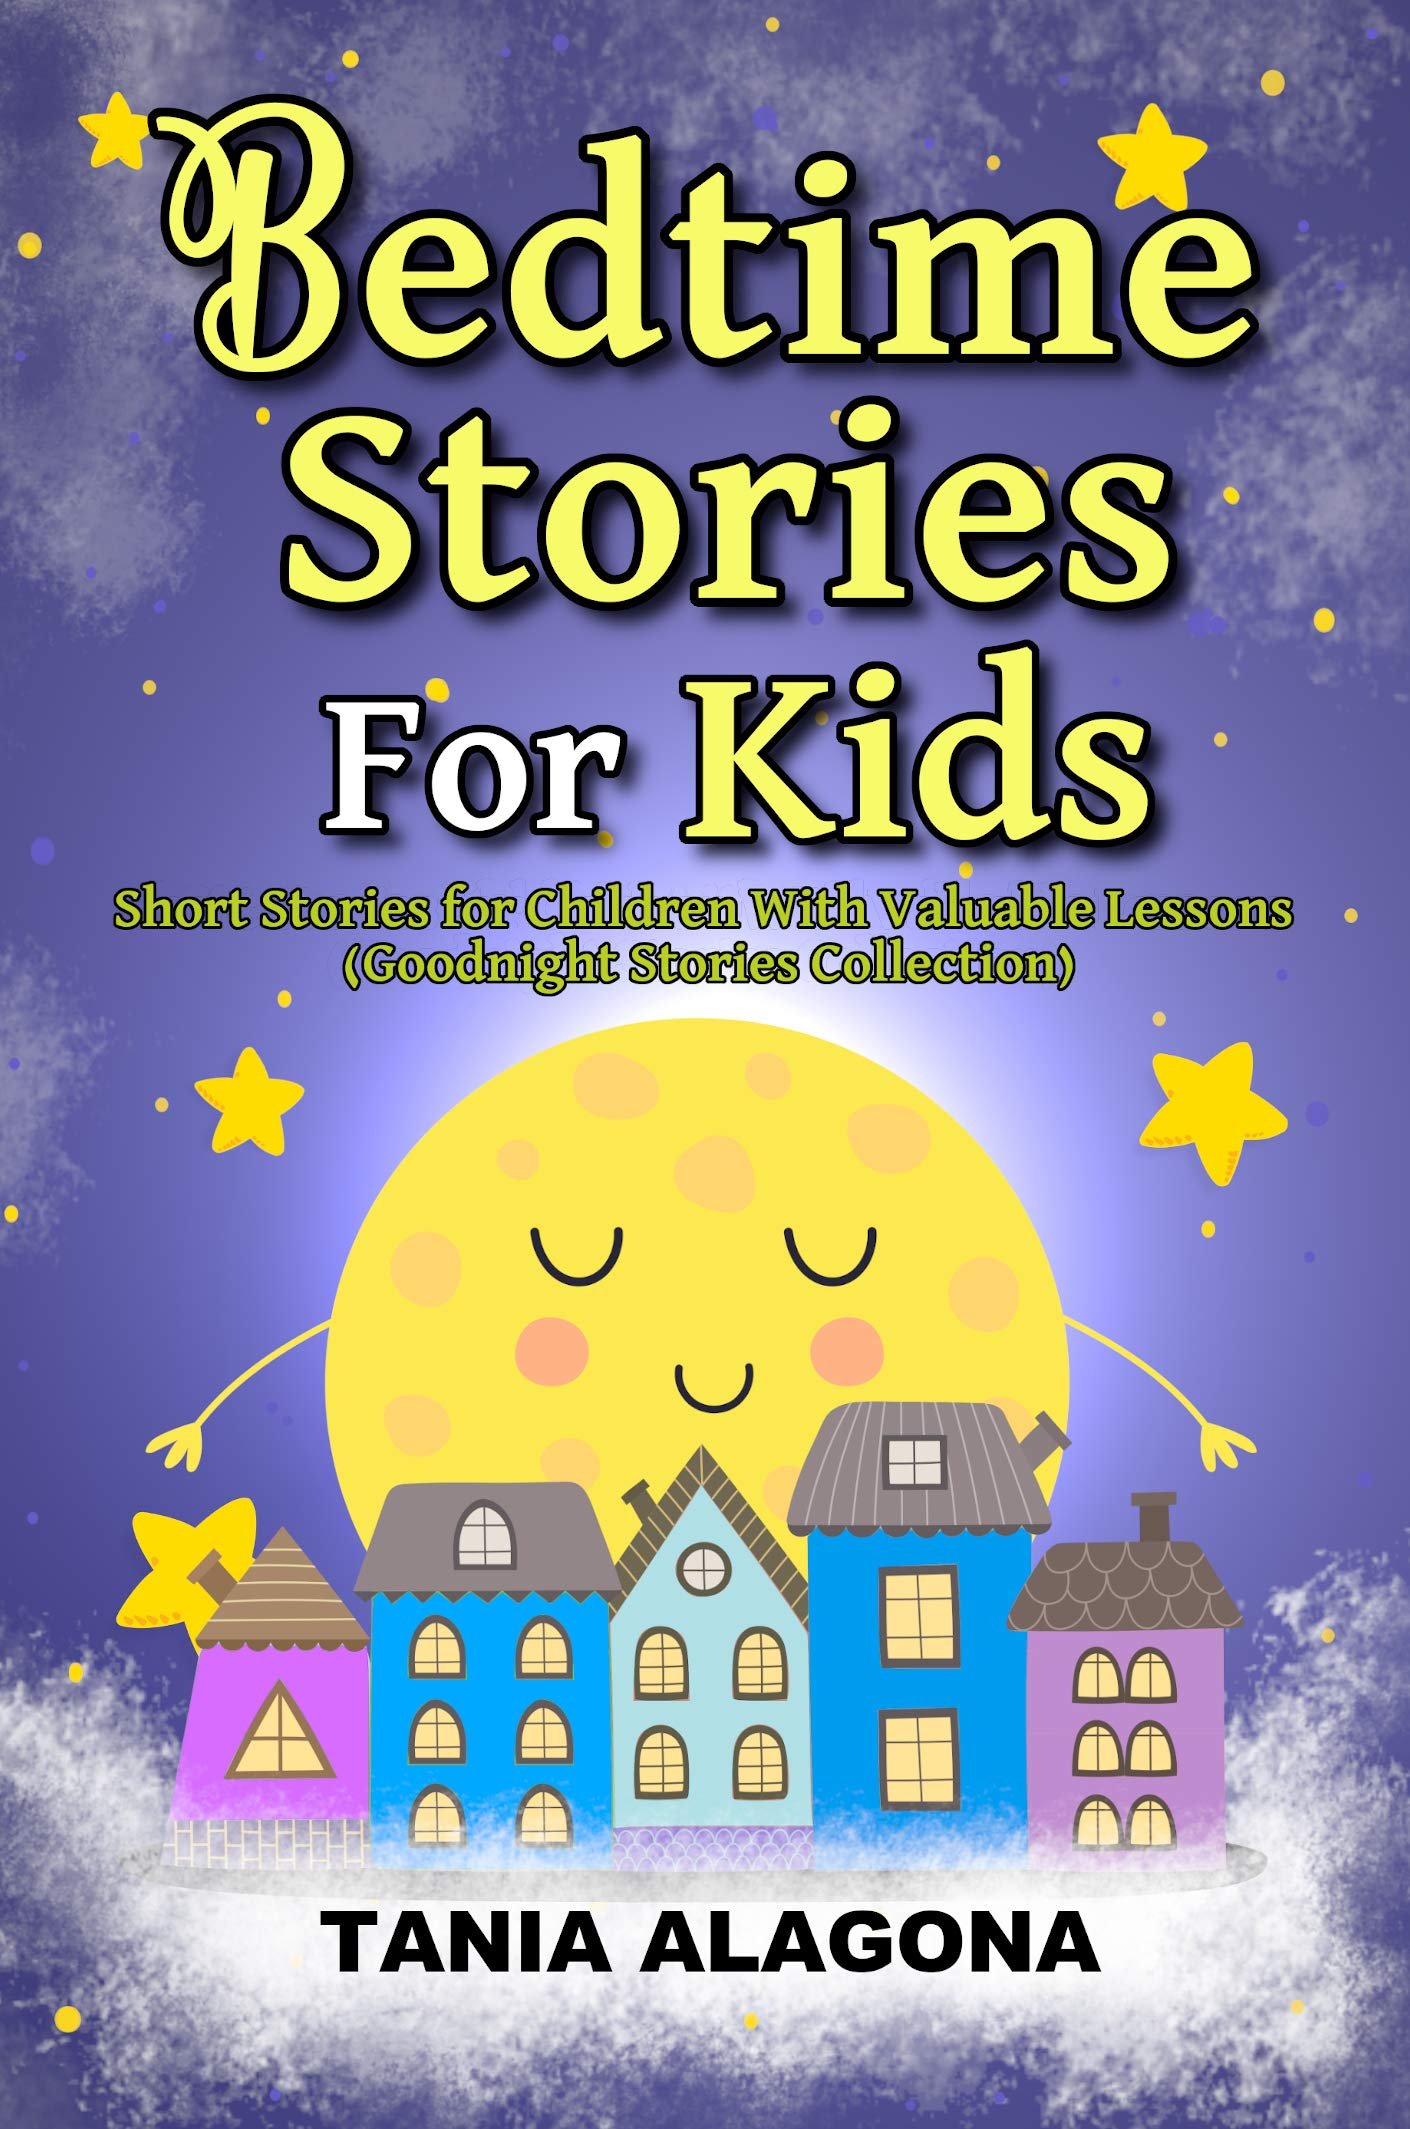 Bedtime Stories for Kids: Short Stories for Children With Valuable Lessons